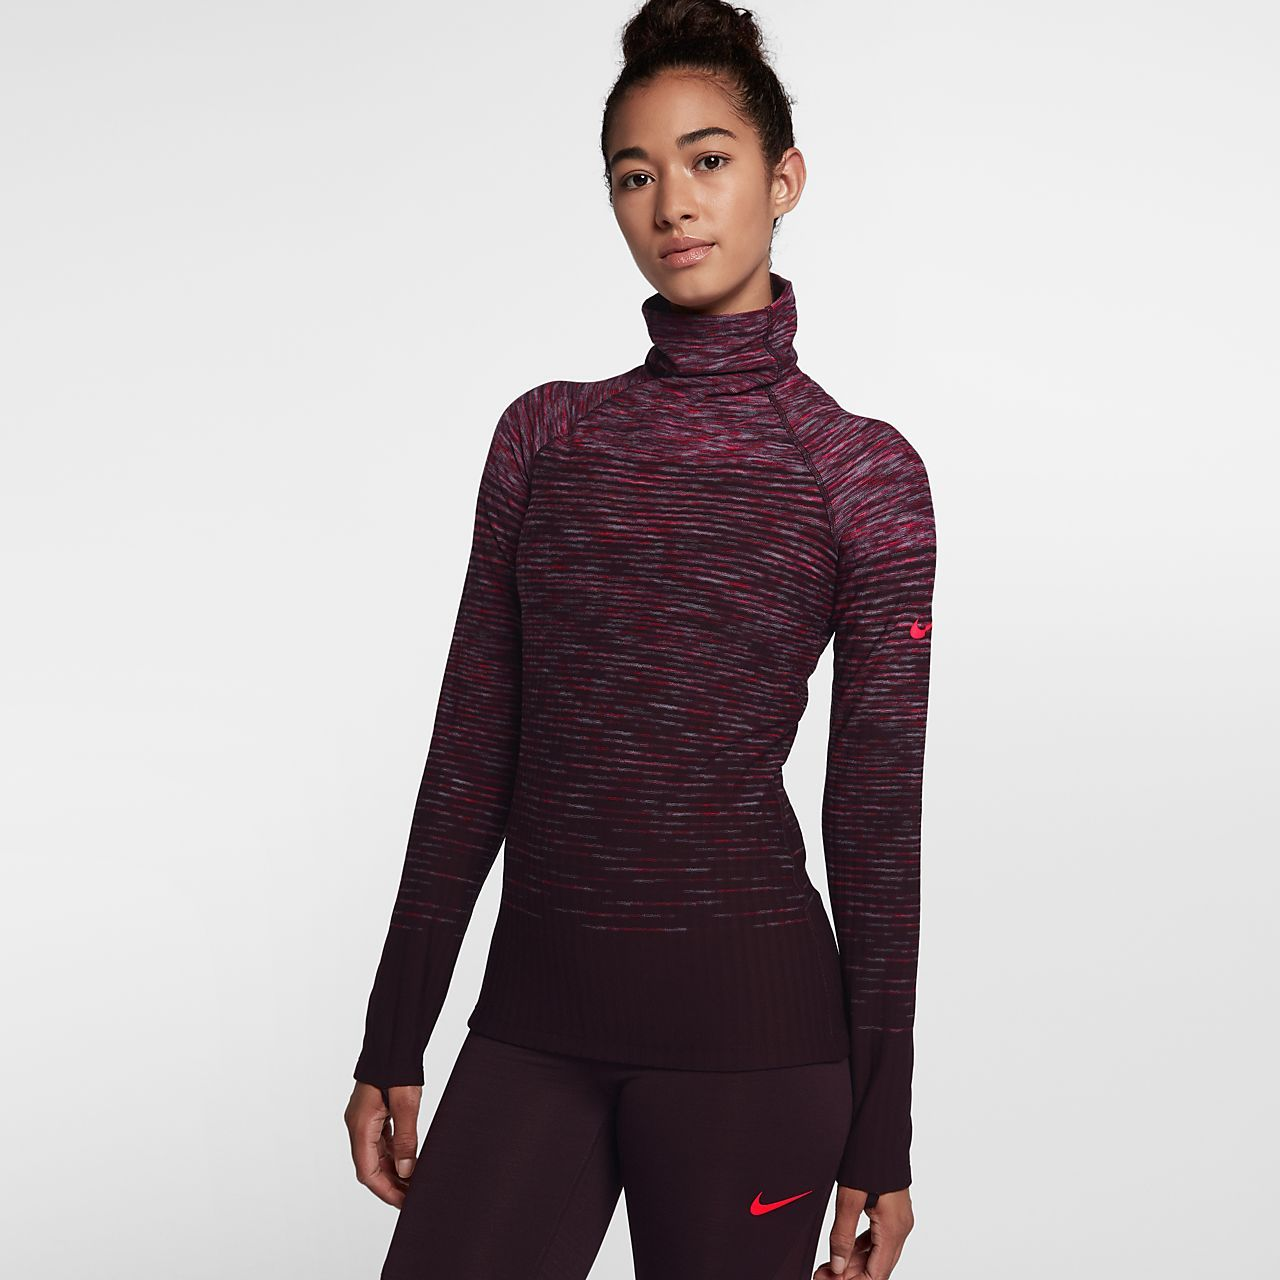 ac02d3ba691ab Nike Pro HyperWarm Women s Long Sleeve Training Top